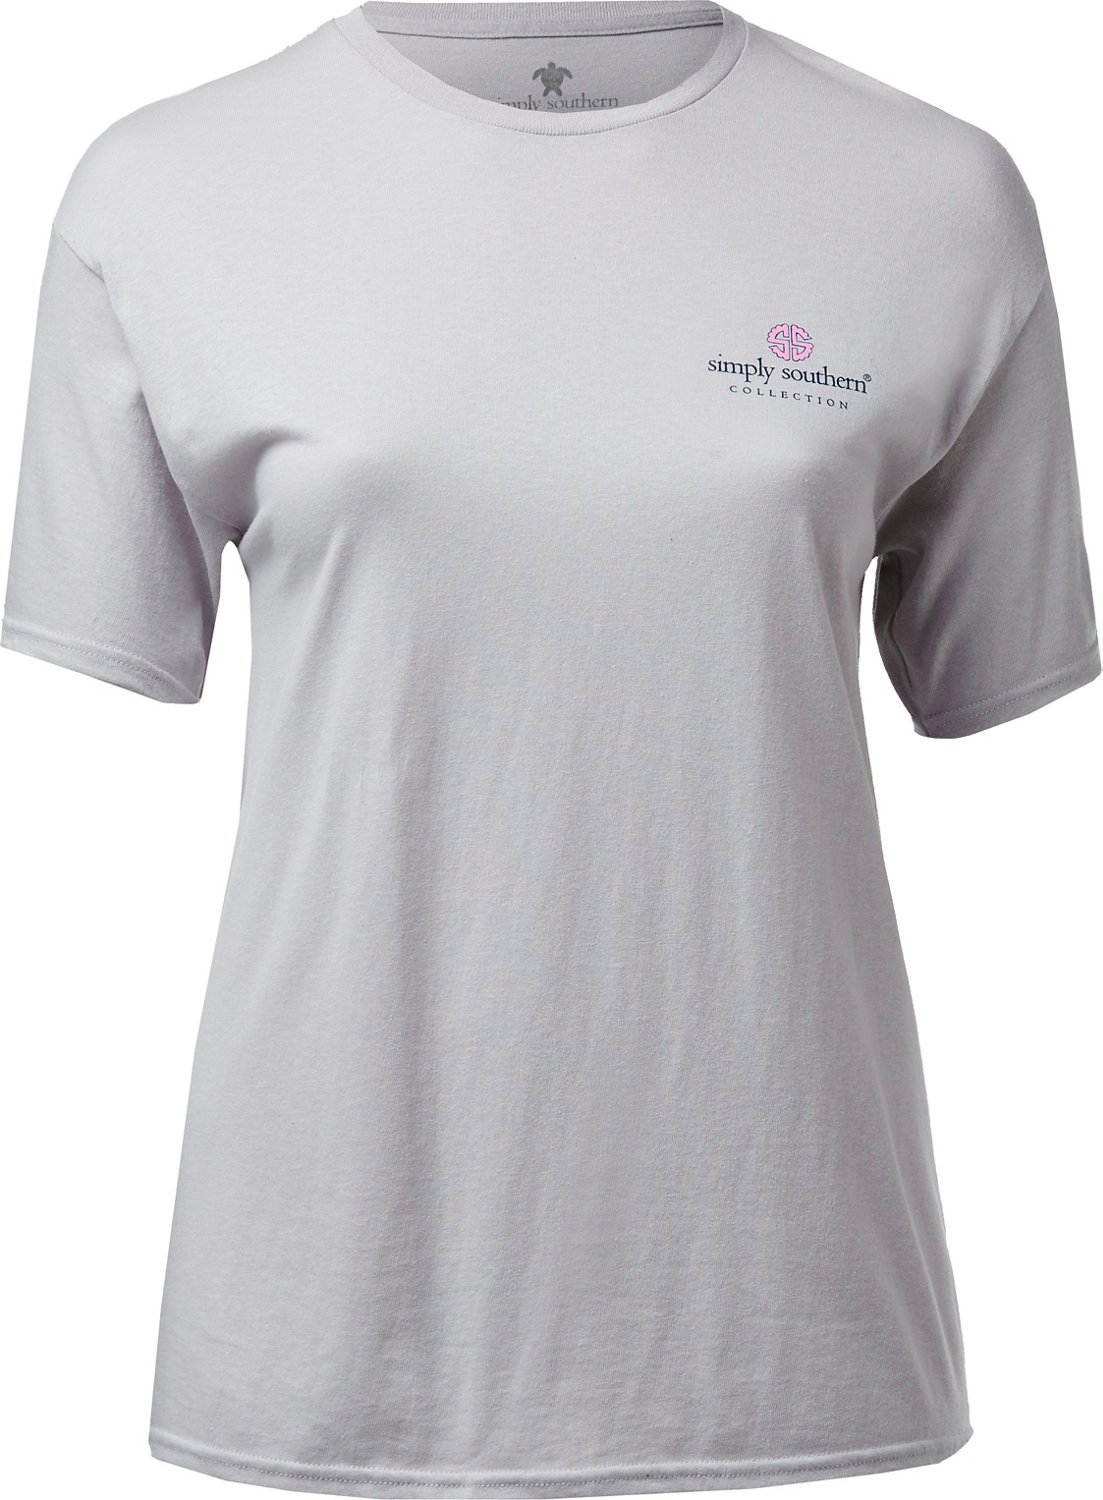 Simply Southern Women's Cactus T-shirt - view number 1